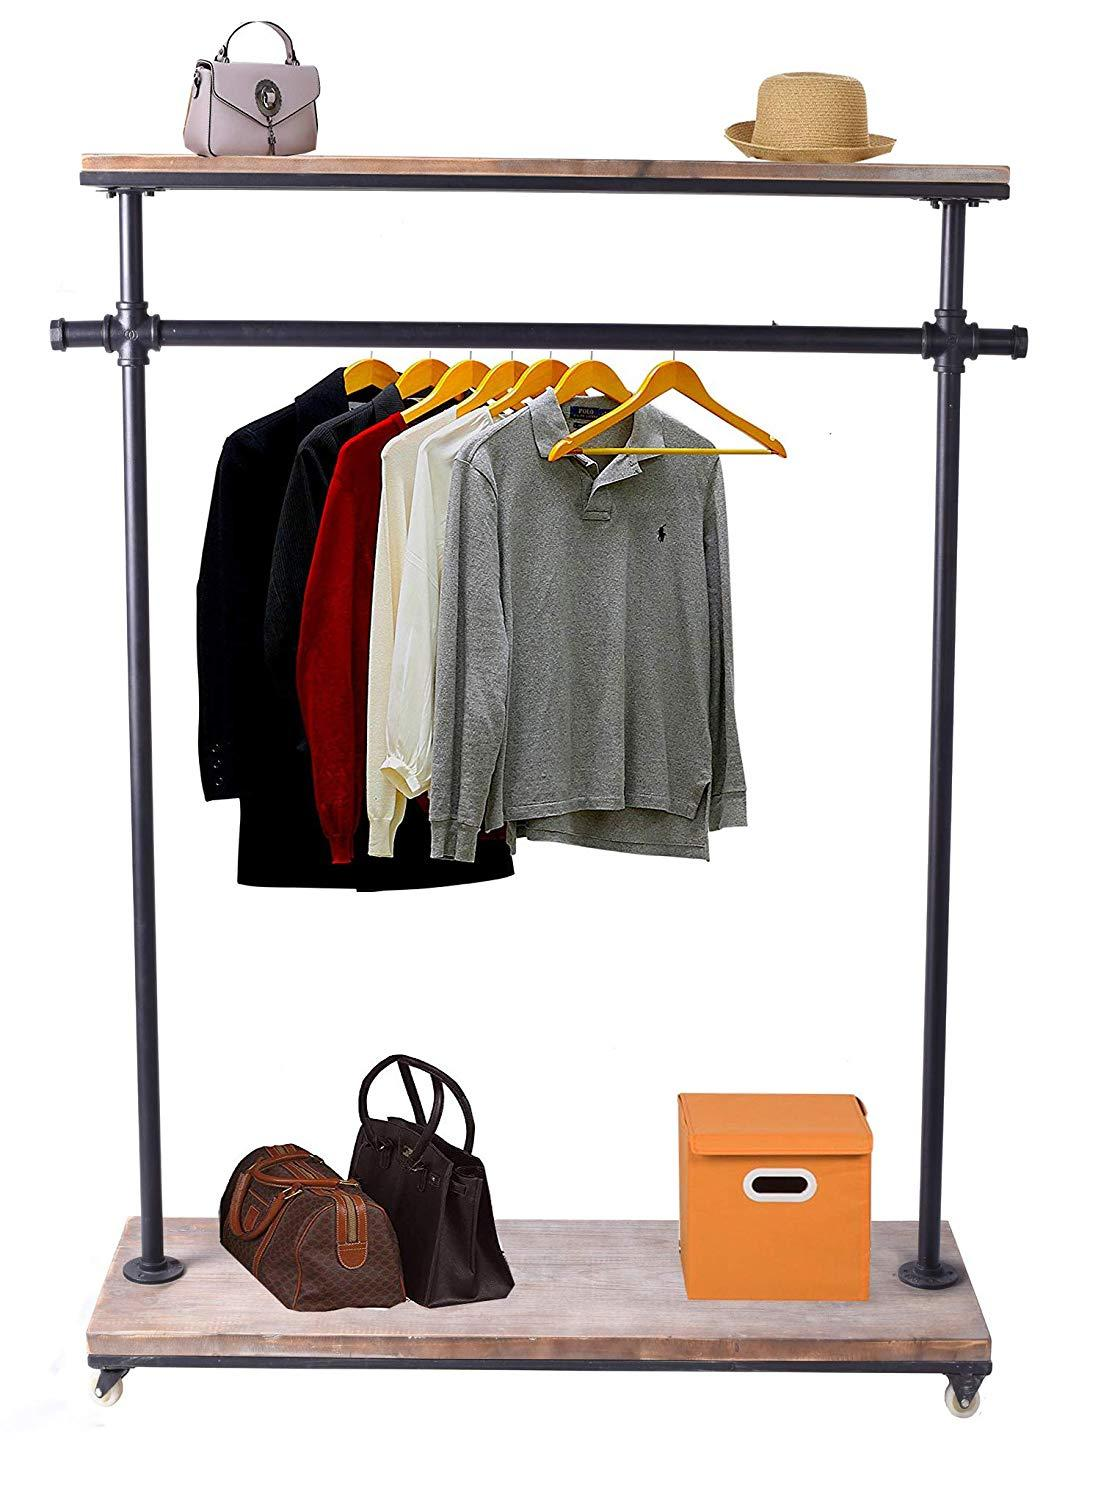 2 level commercial clothing rack industrial furniture pipe clothes rack rolling garment rack wooden clothes display rack